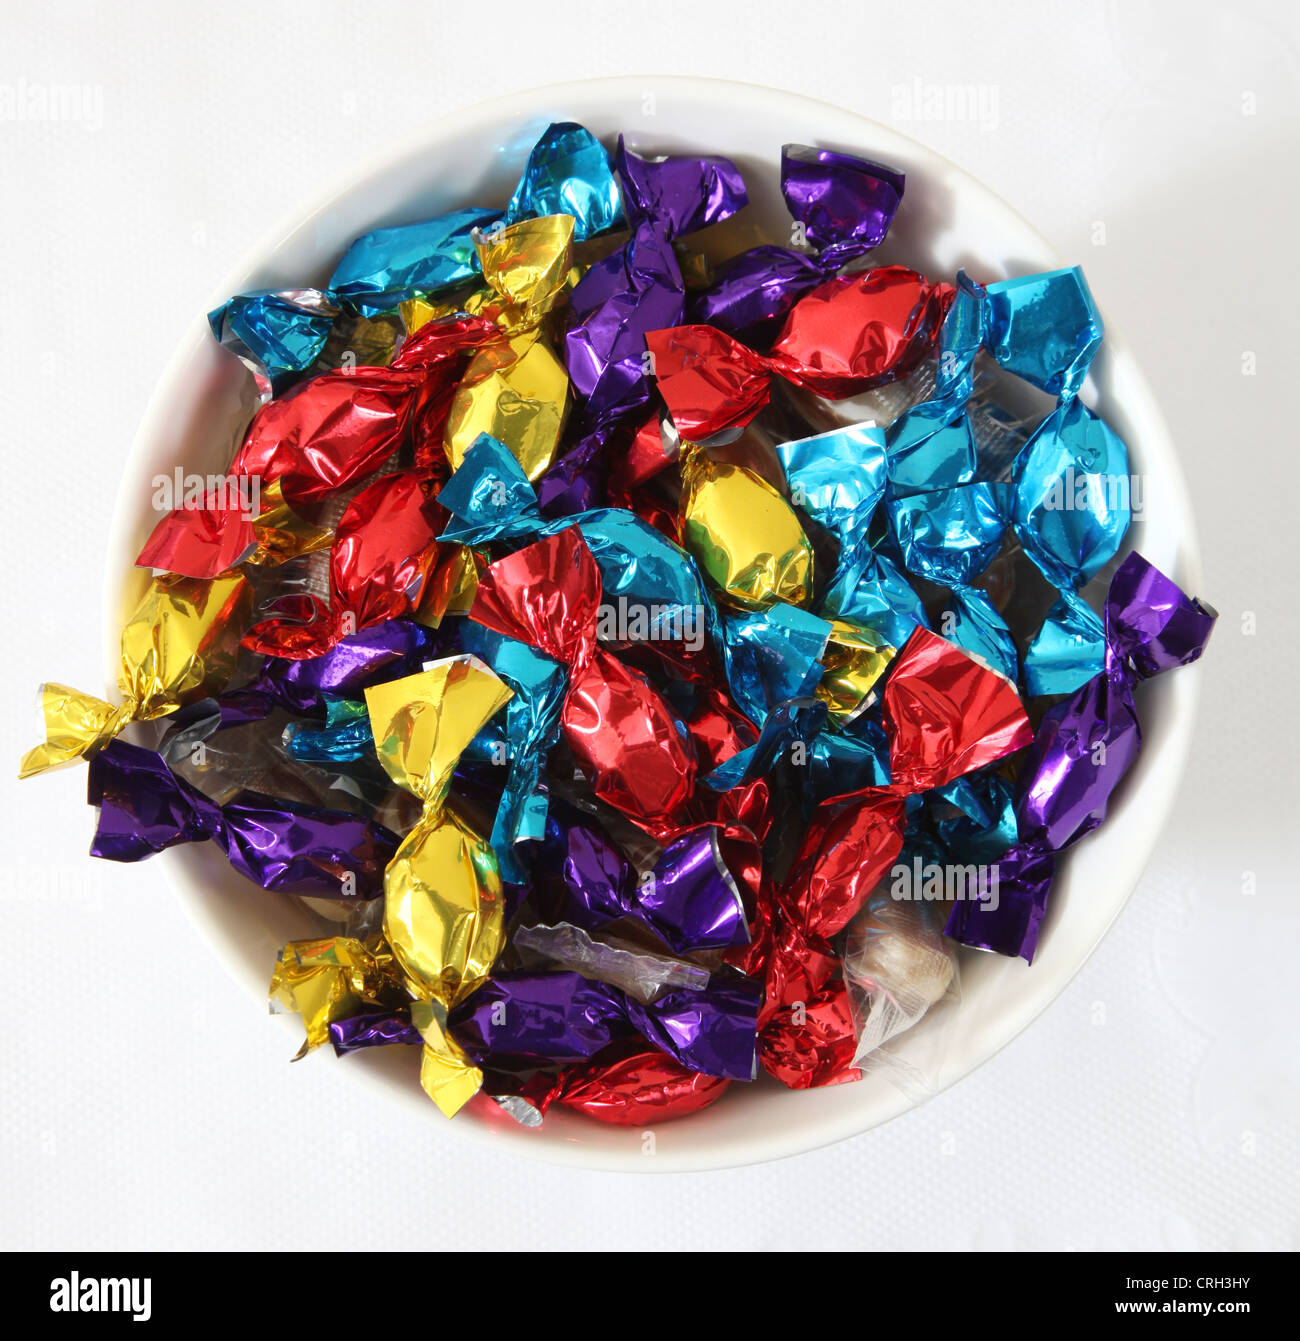 A bowl of sweets in colourful wrappers. - Stock Image